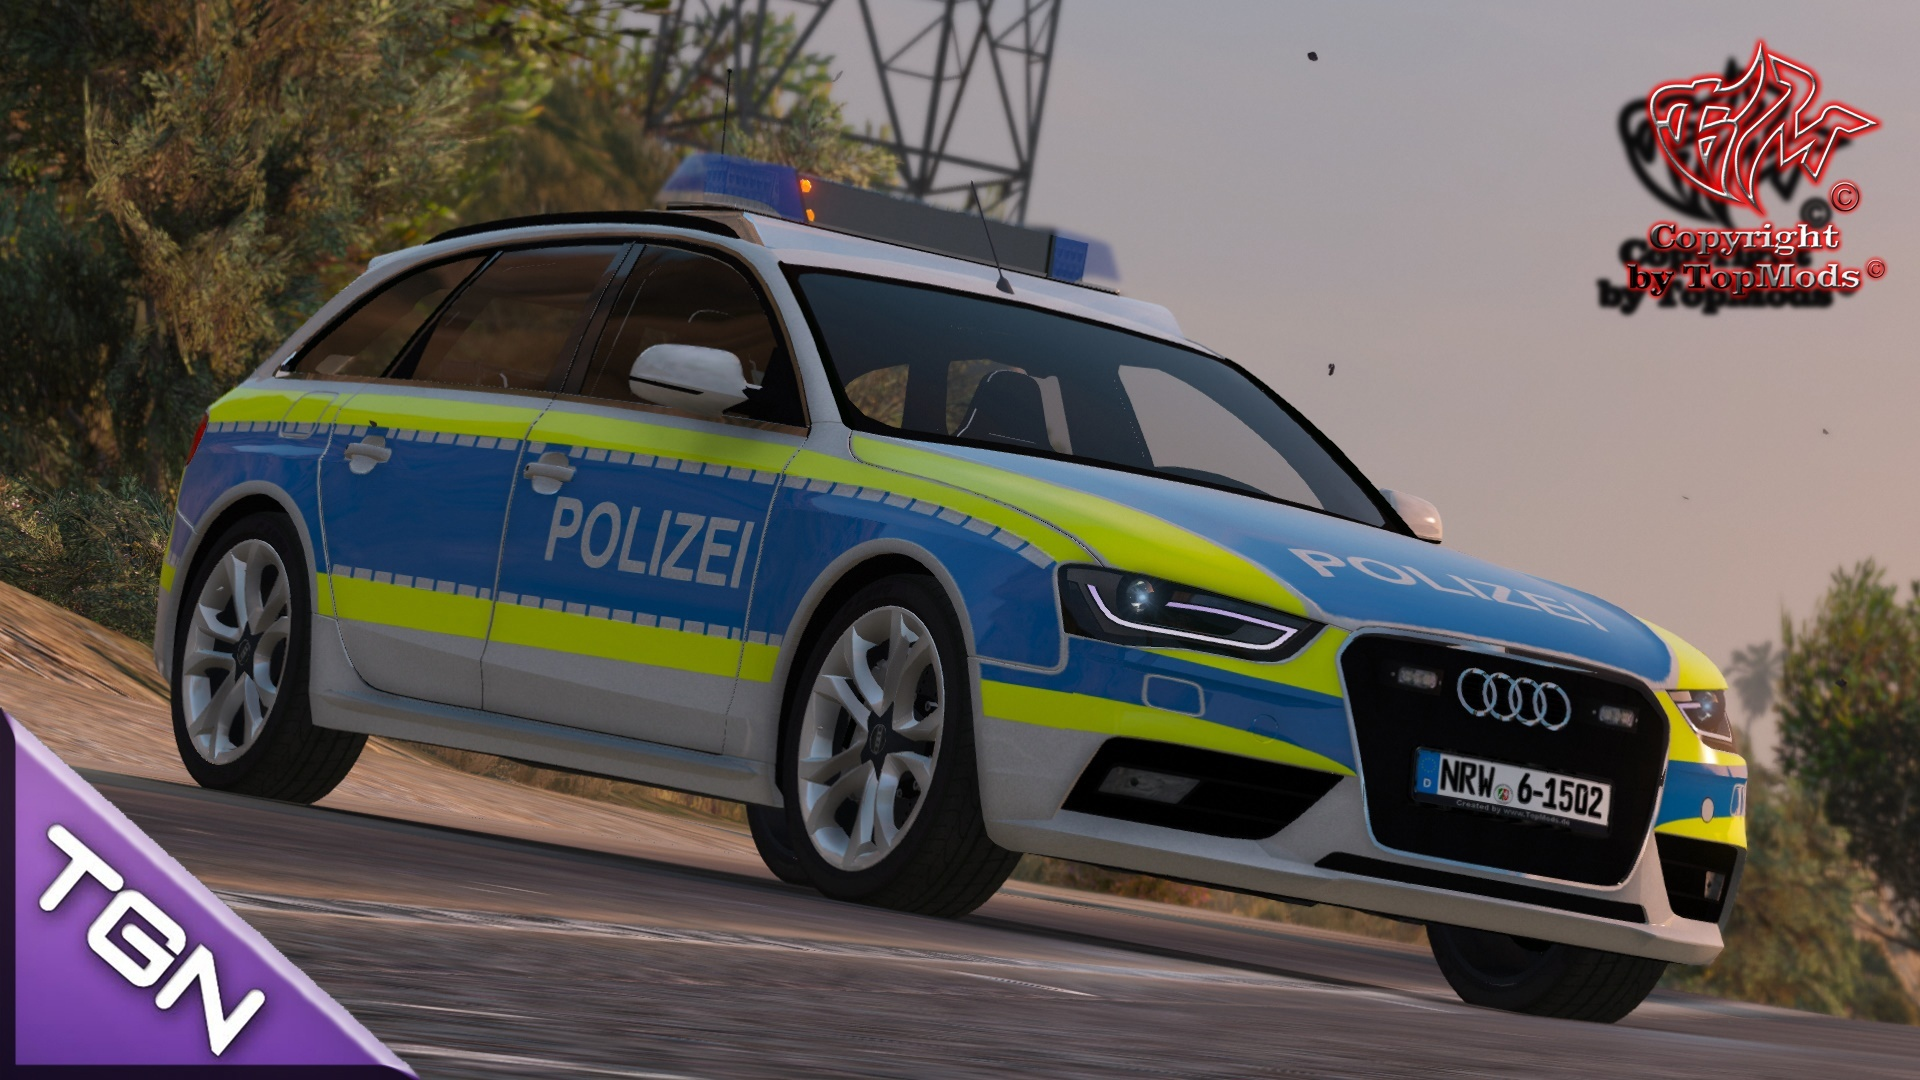 Audi A4 Avant Modified New Audi A4 Avant Autobahnpolizei Nrw Gta5 Mods Com-2460 Of Fresh Audi A4 Avant Modified